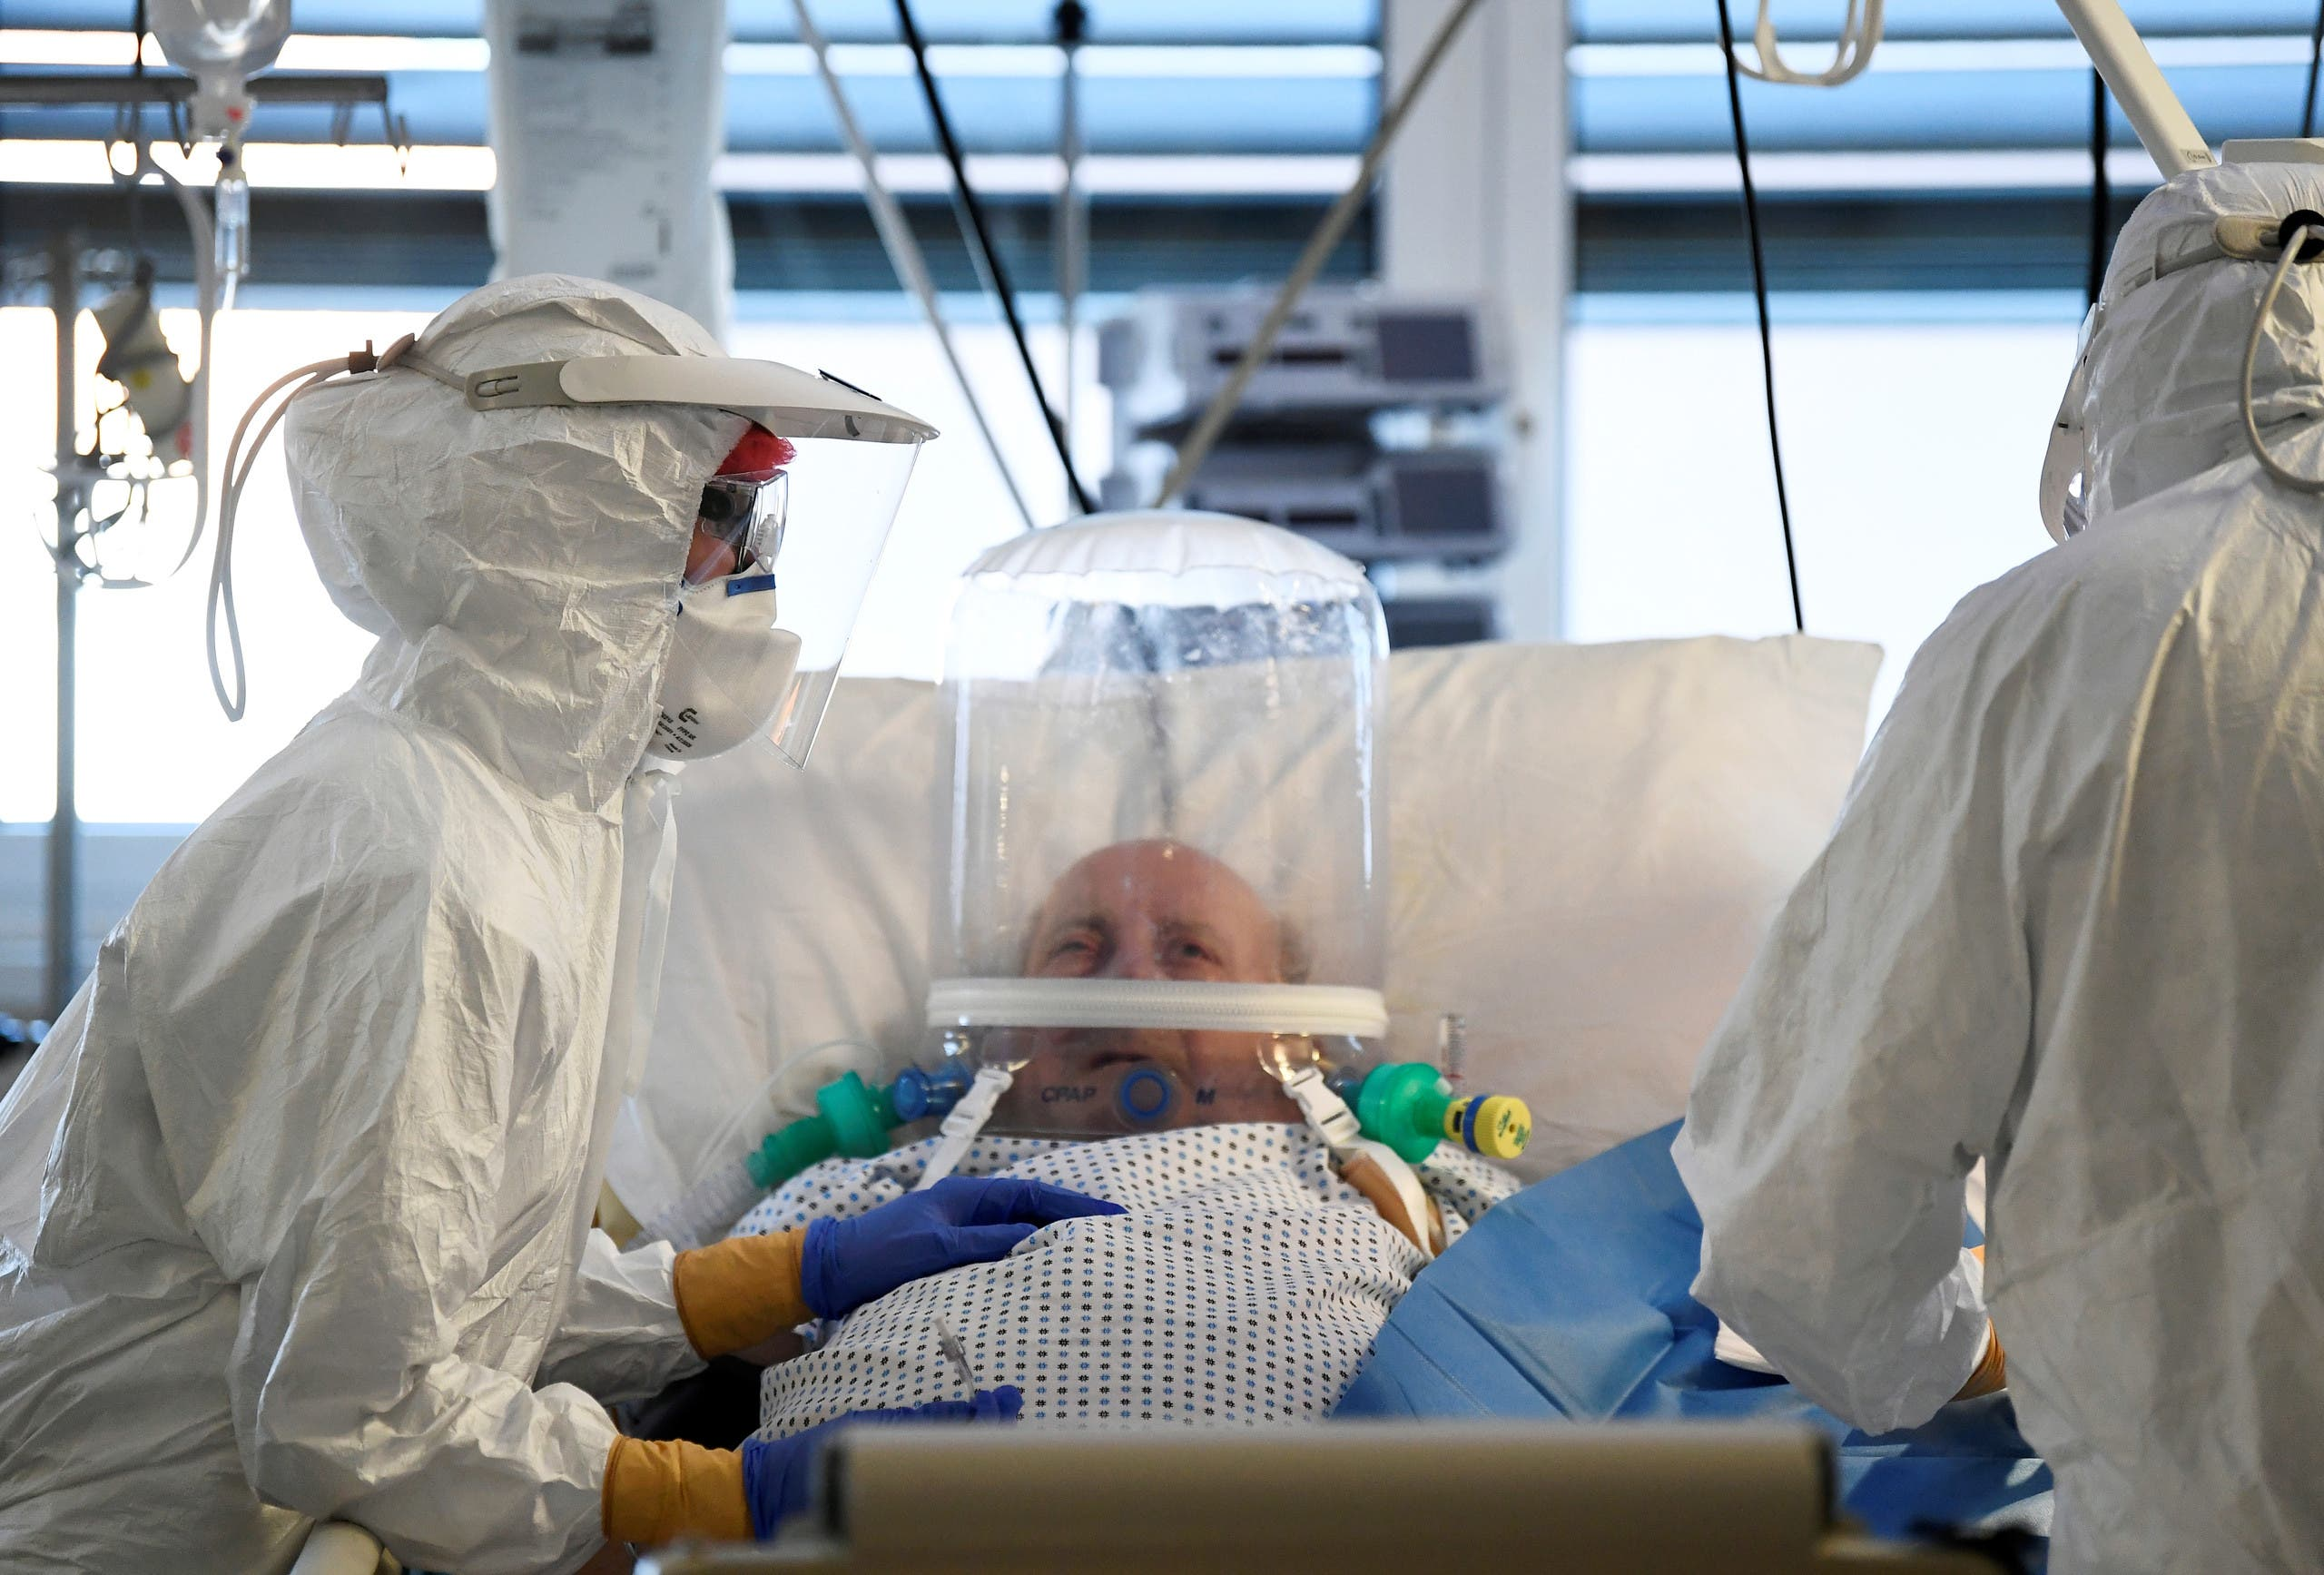 Medical staff members are seen next to a patient suffering from the coronavirus disease in the intensive care unit at the Circolo hospital in Varese, Italy April 9, 2020. (Reuters)